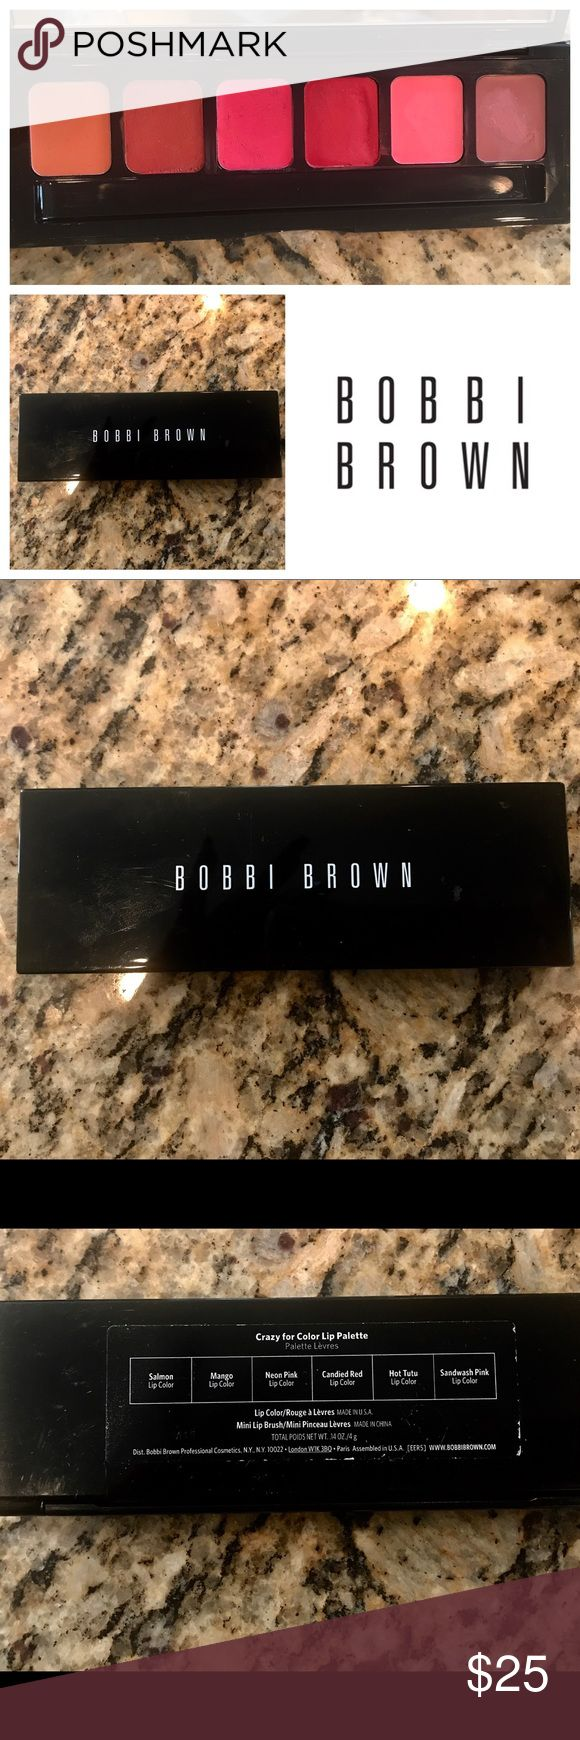 Bobbi Brown Lipstick Palette Bobbie Brown lipstick palette X 6    This has been swatched for a makeup review but I've sanitized it with professional makeup sanitizer wipes from Beauty So Clean. I'm also include two packages of the sanitizer for your peace of mind.   I'm a professional makeup artist and clearing out my items because I'm moving. Grab up the deals on super high End products. Bobbi Brown Makeup Lipstick